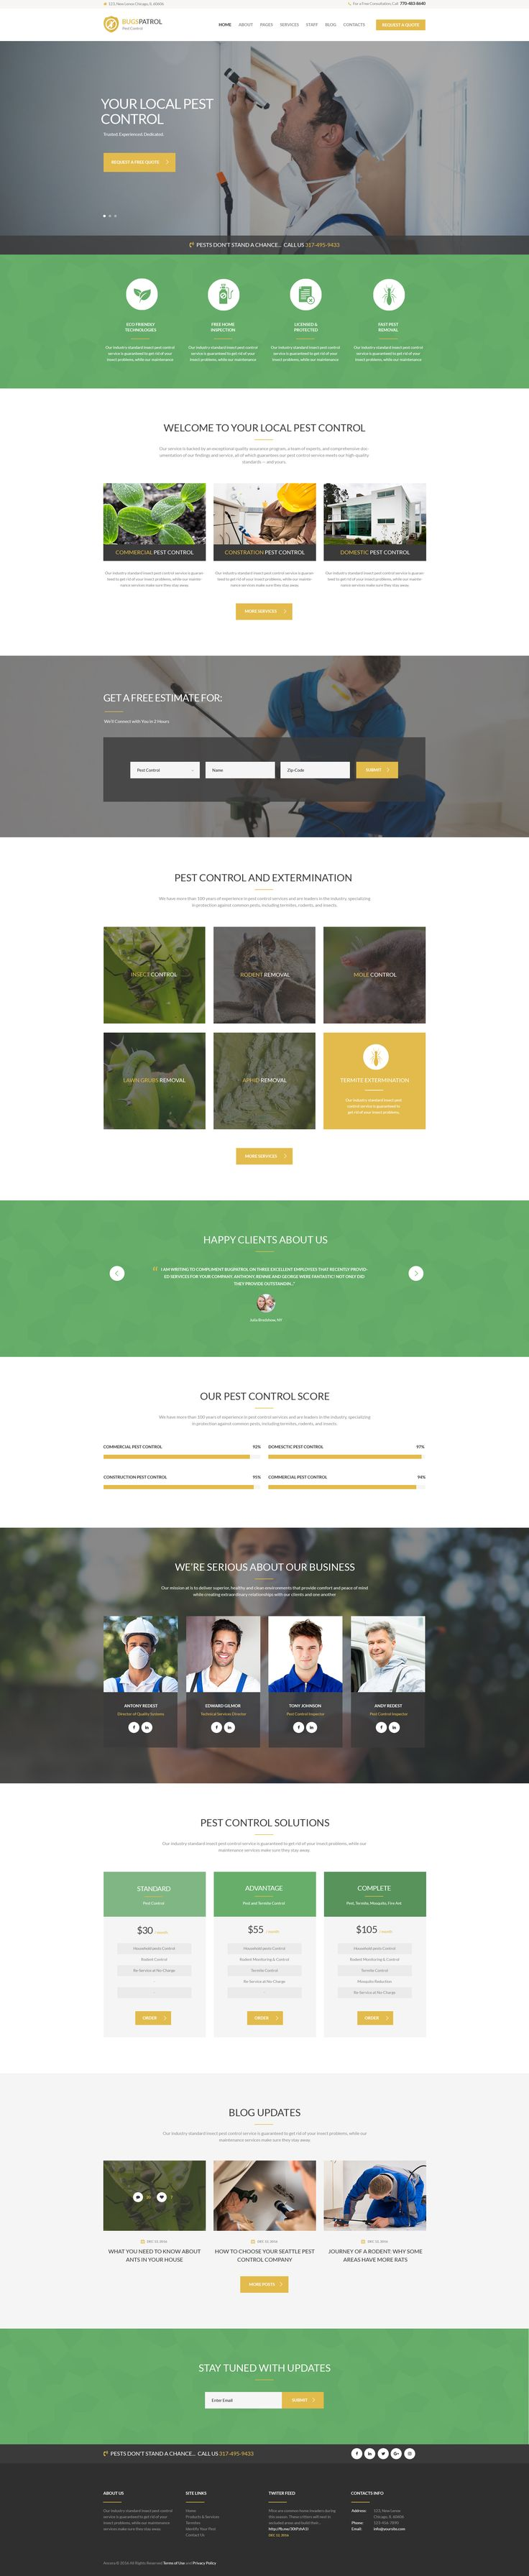 BugsPatrol - Pest Control Services WP Theme #domestic #extermination #pest • Download ➝ https://themeforest.net/item/bugspatrol-pest-control-services-wp-theme/17323354?ref=pxcr